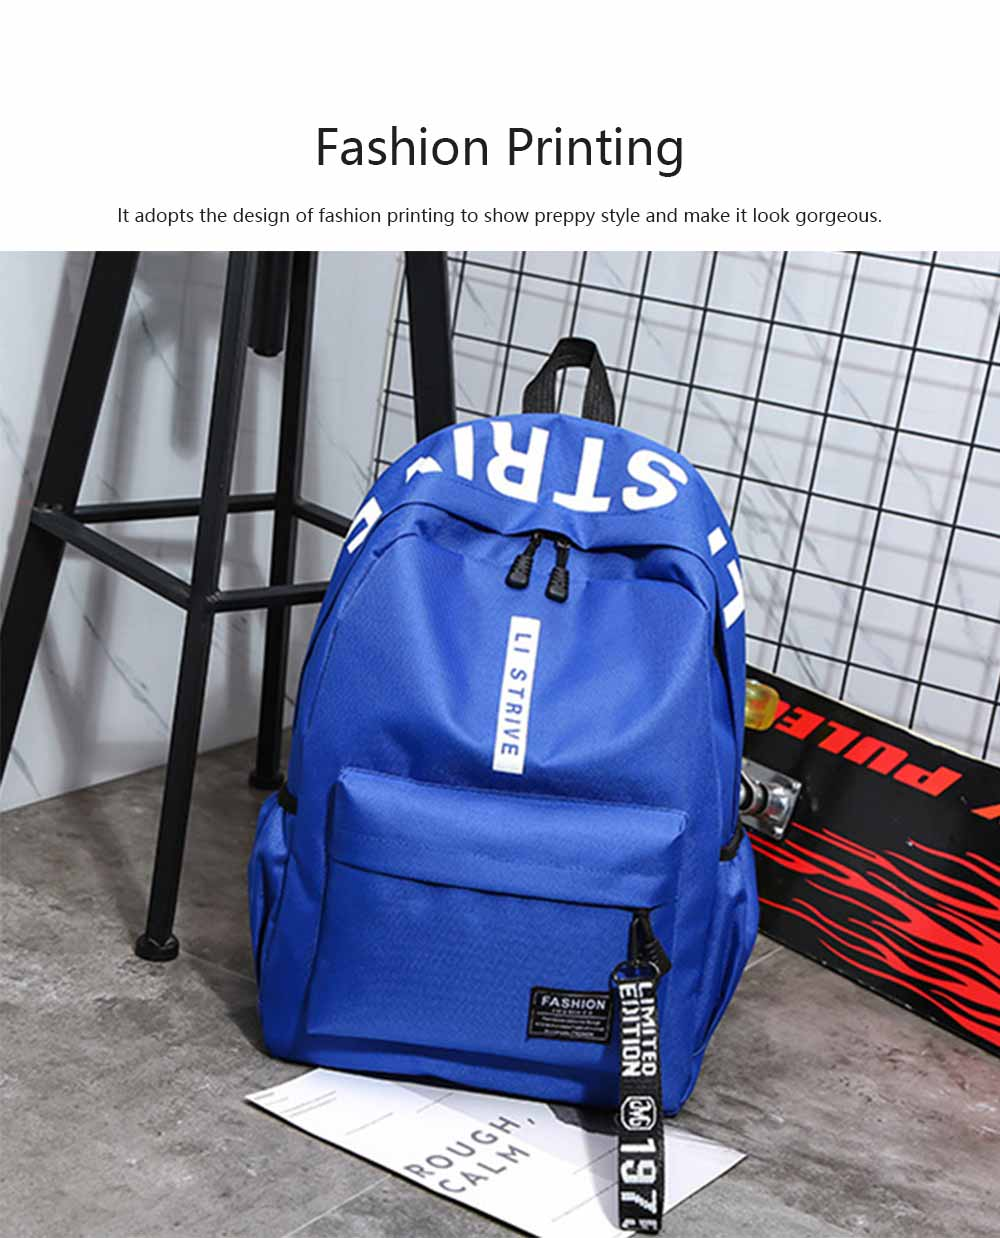 Preppy Style School Bag for Students Fashion Printing Smooth Zipper Adjustable Shoulder Strap Side Pockets Ribbon Backpack 1